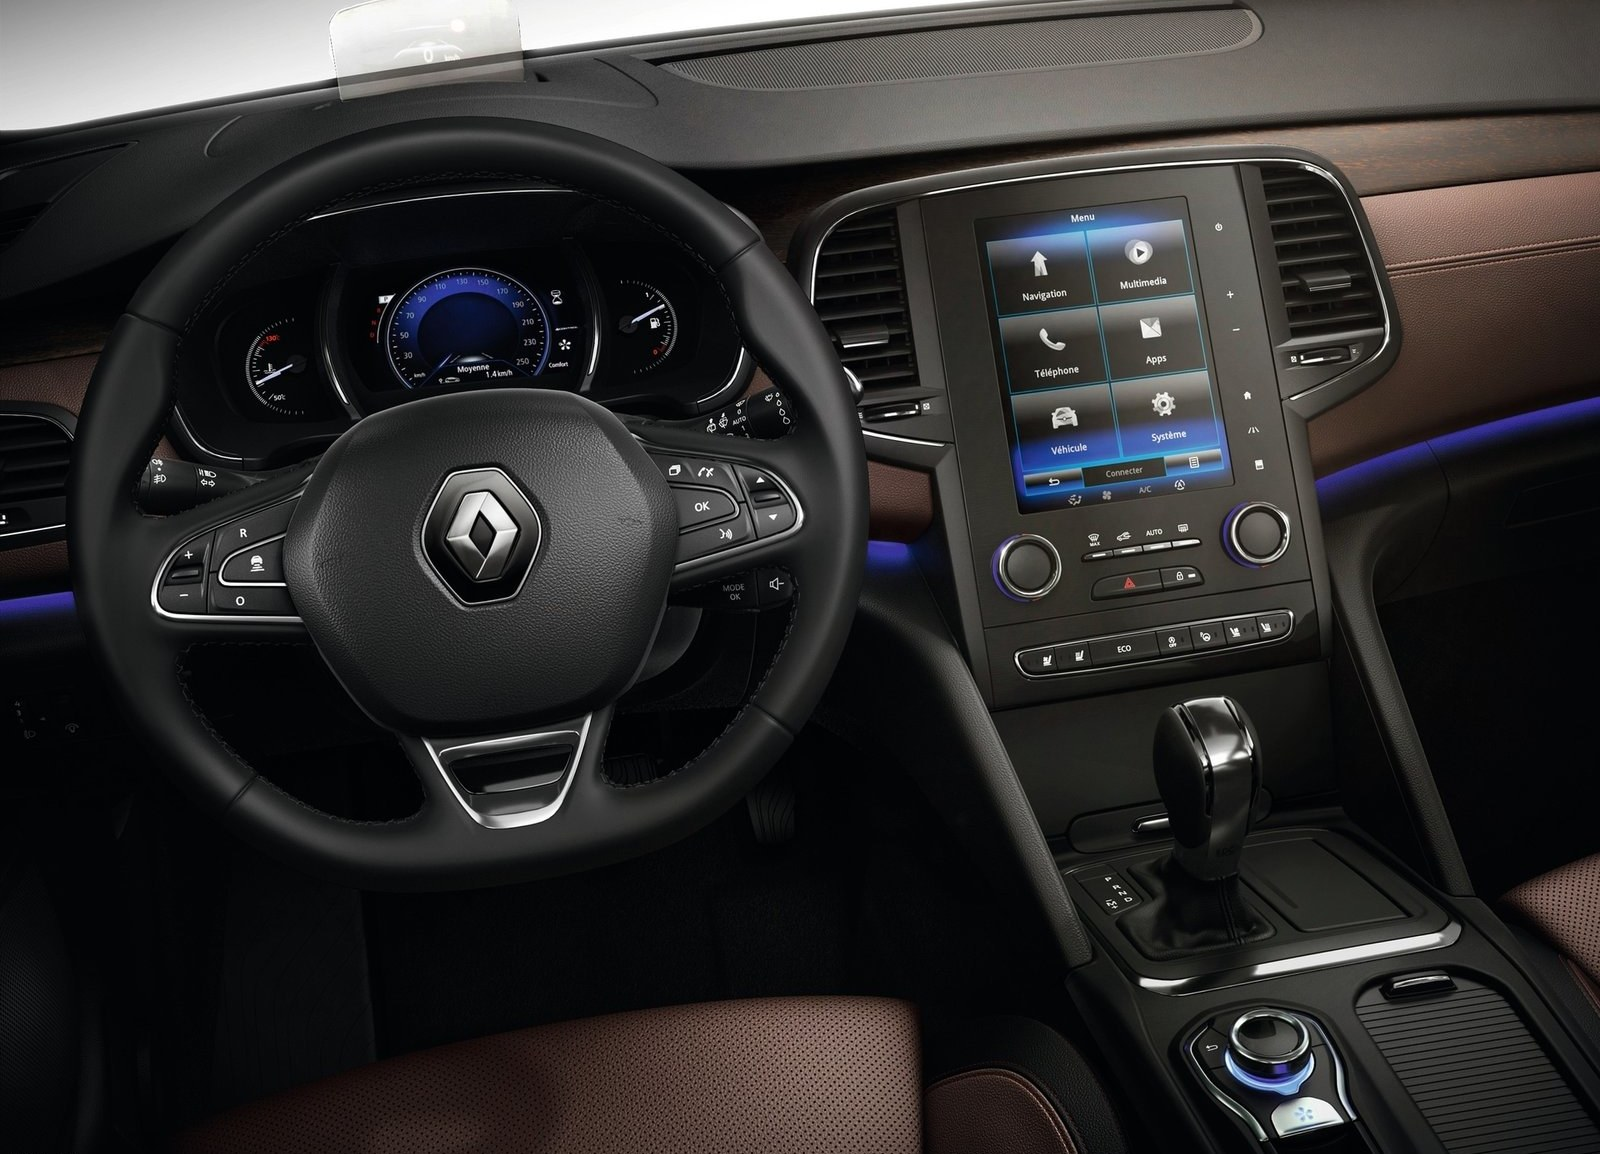 2016 Renault Talisman Cockpit and Dashboard